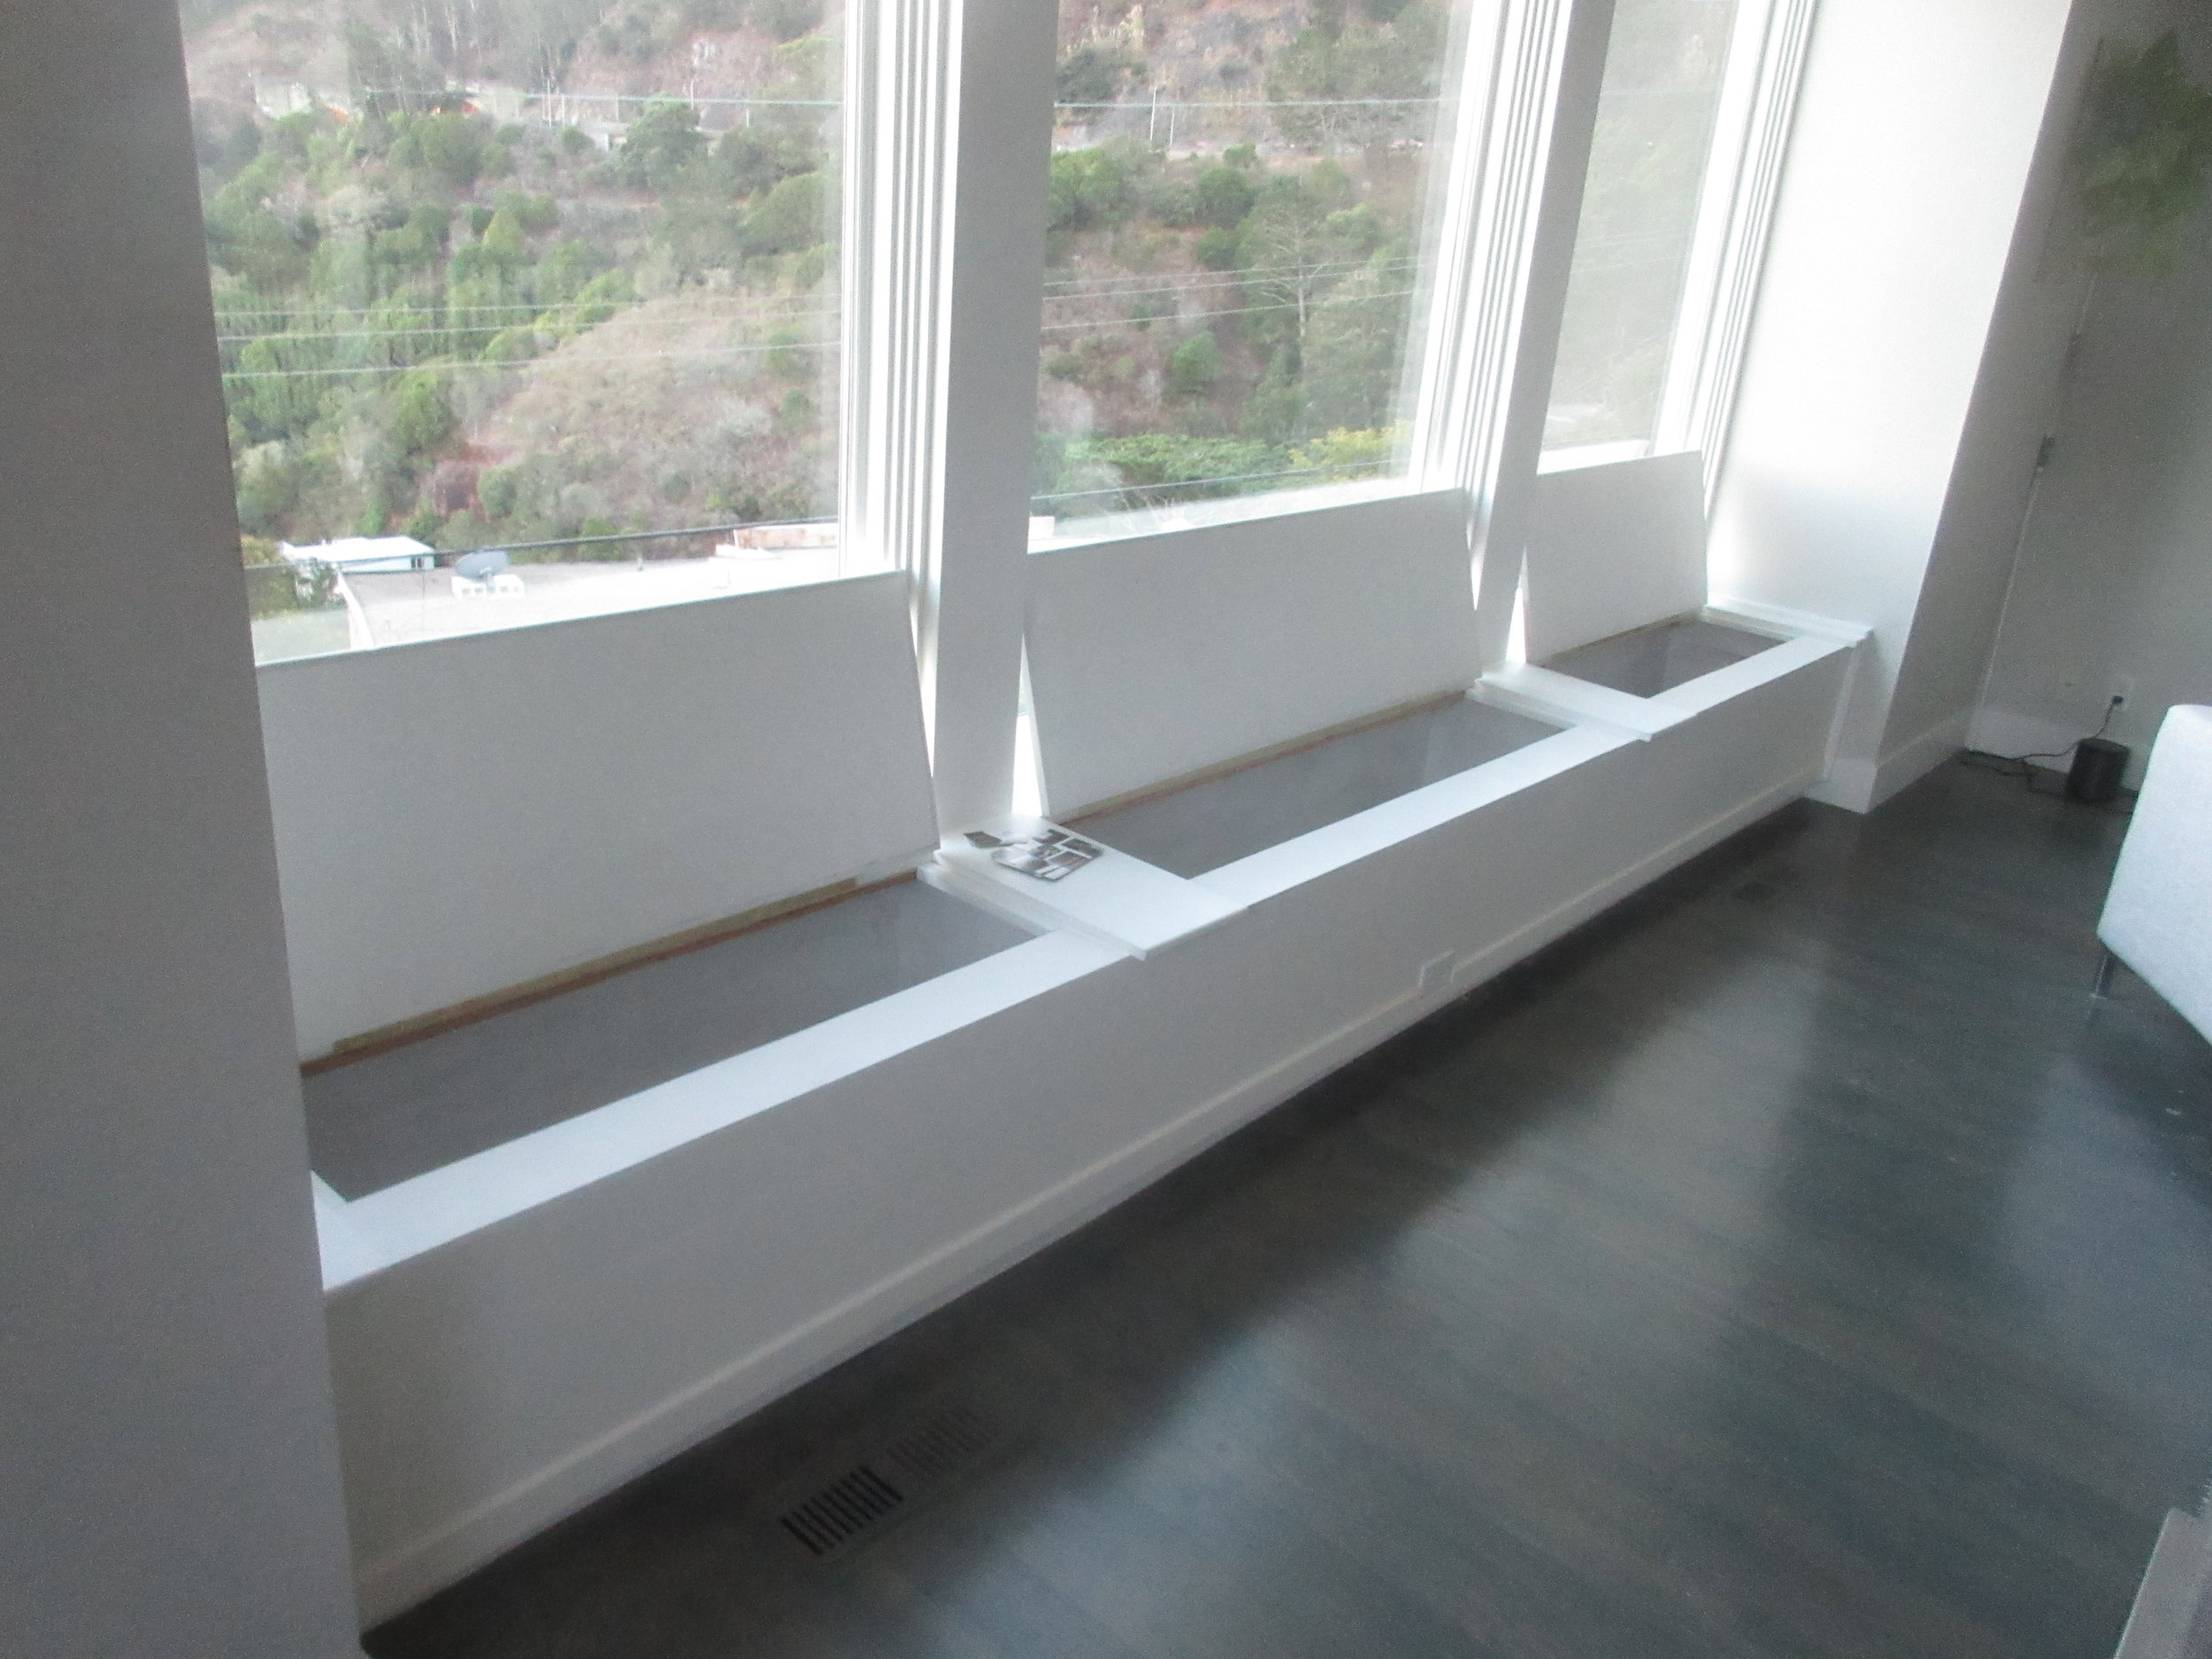 """Emergency"" wood working project in Sausalito to complete the half-finished storage benches below the focal point bay-view windows of a beautiful home days before a housewarming, that had been left undone for several months by the prior contractor."